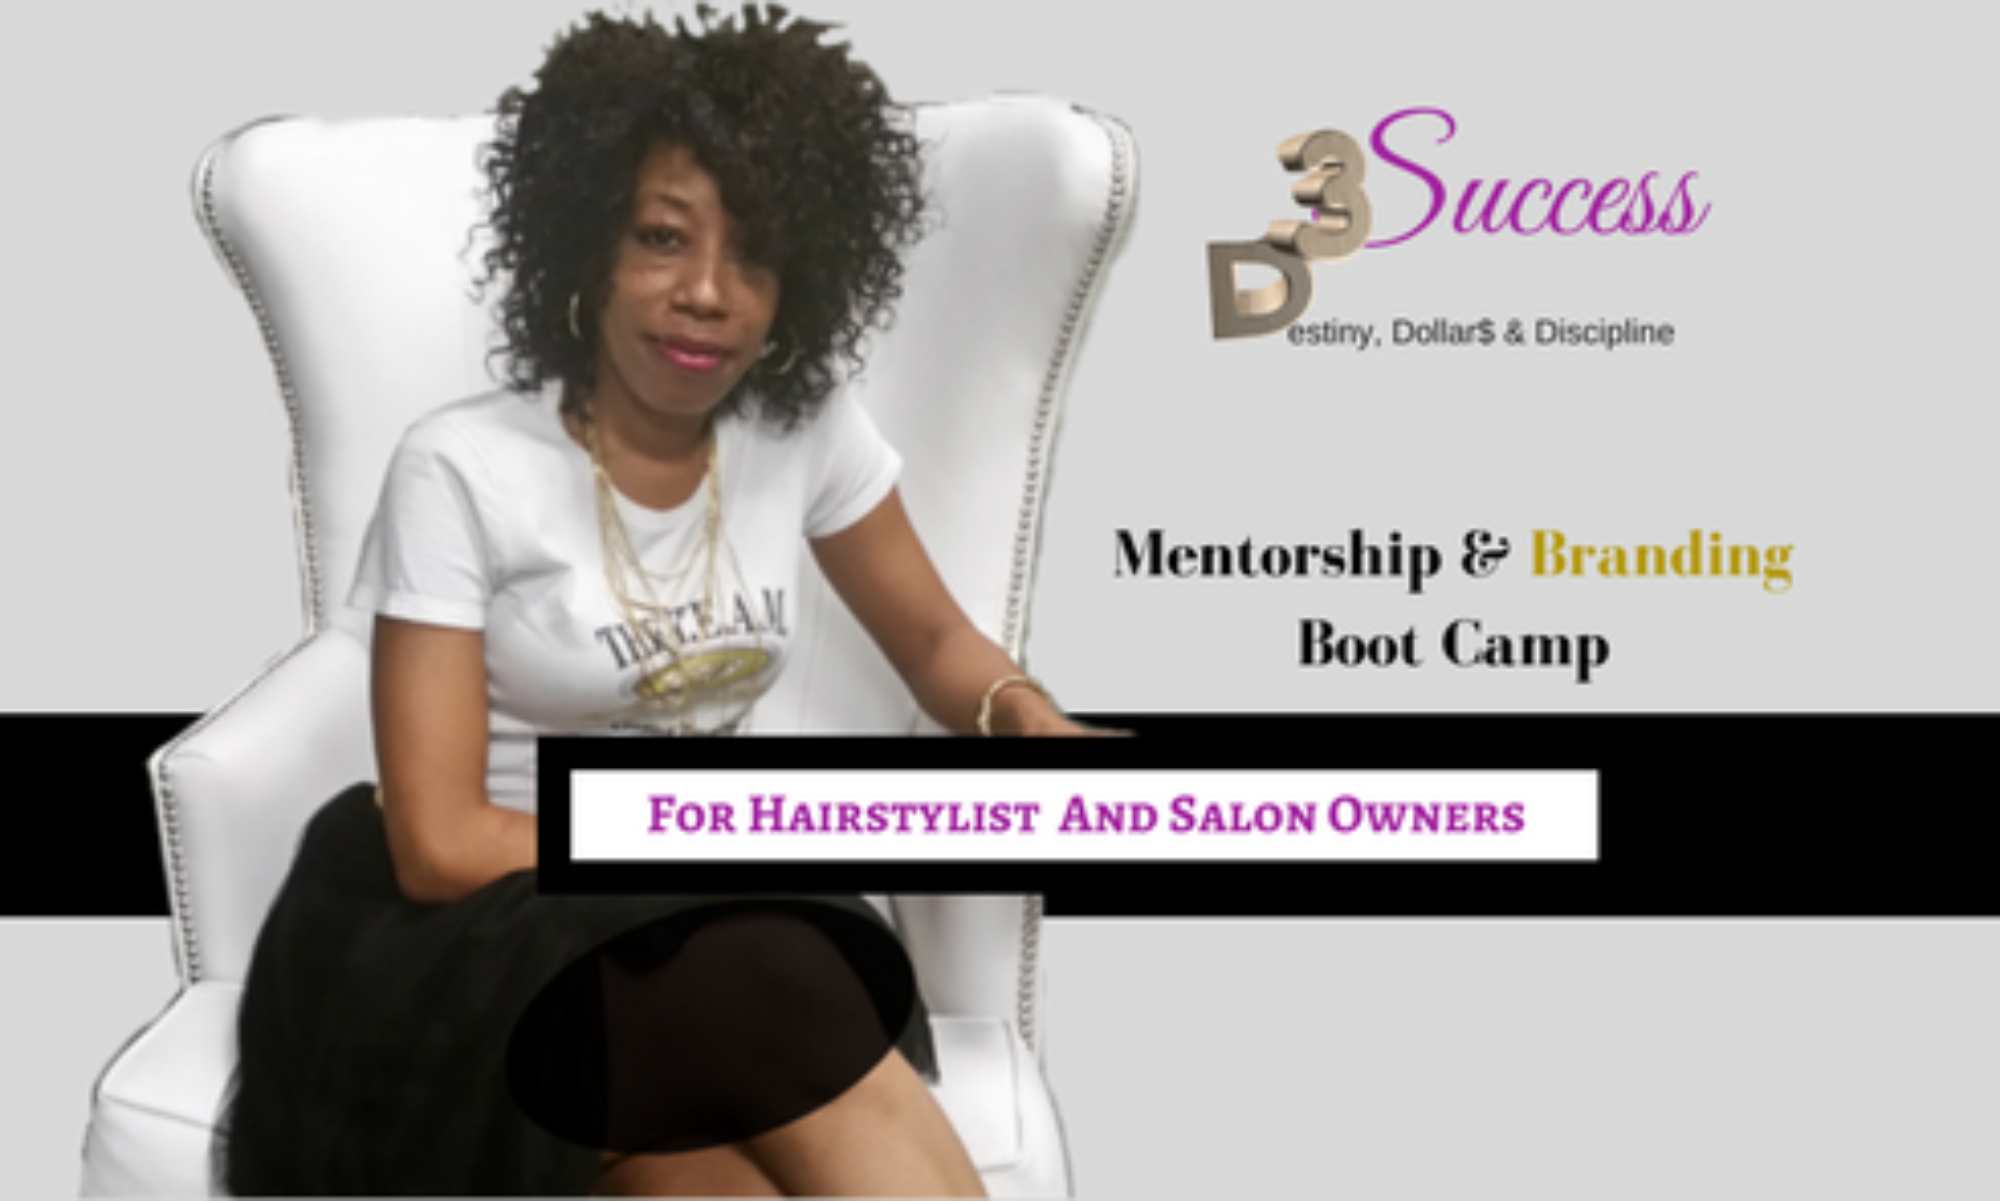 Helping Salon Owners and Hairstylist Profit In Their Business, Mindset & Personal Development